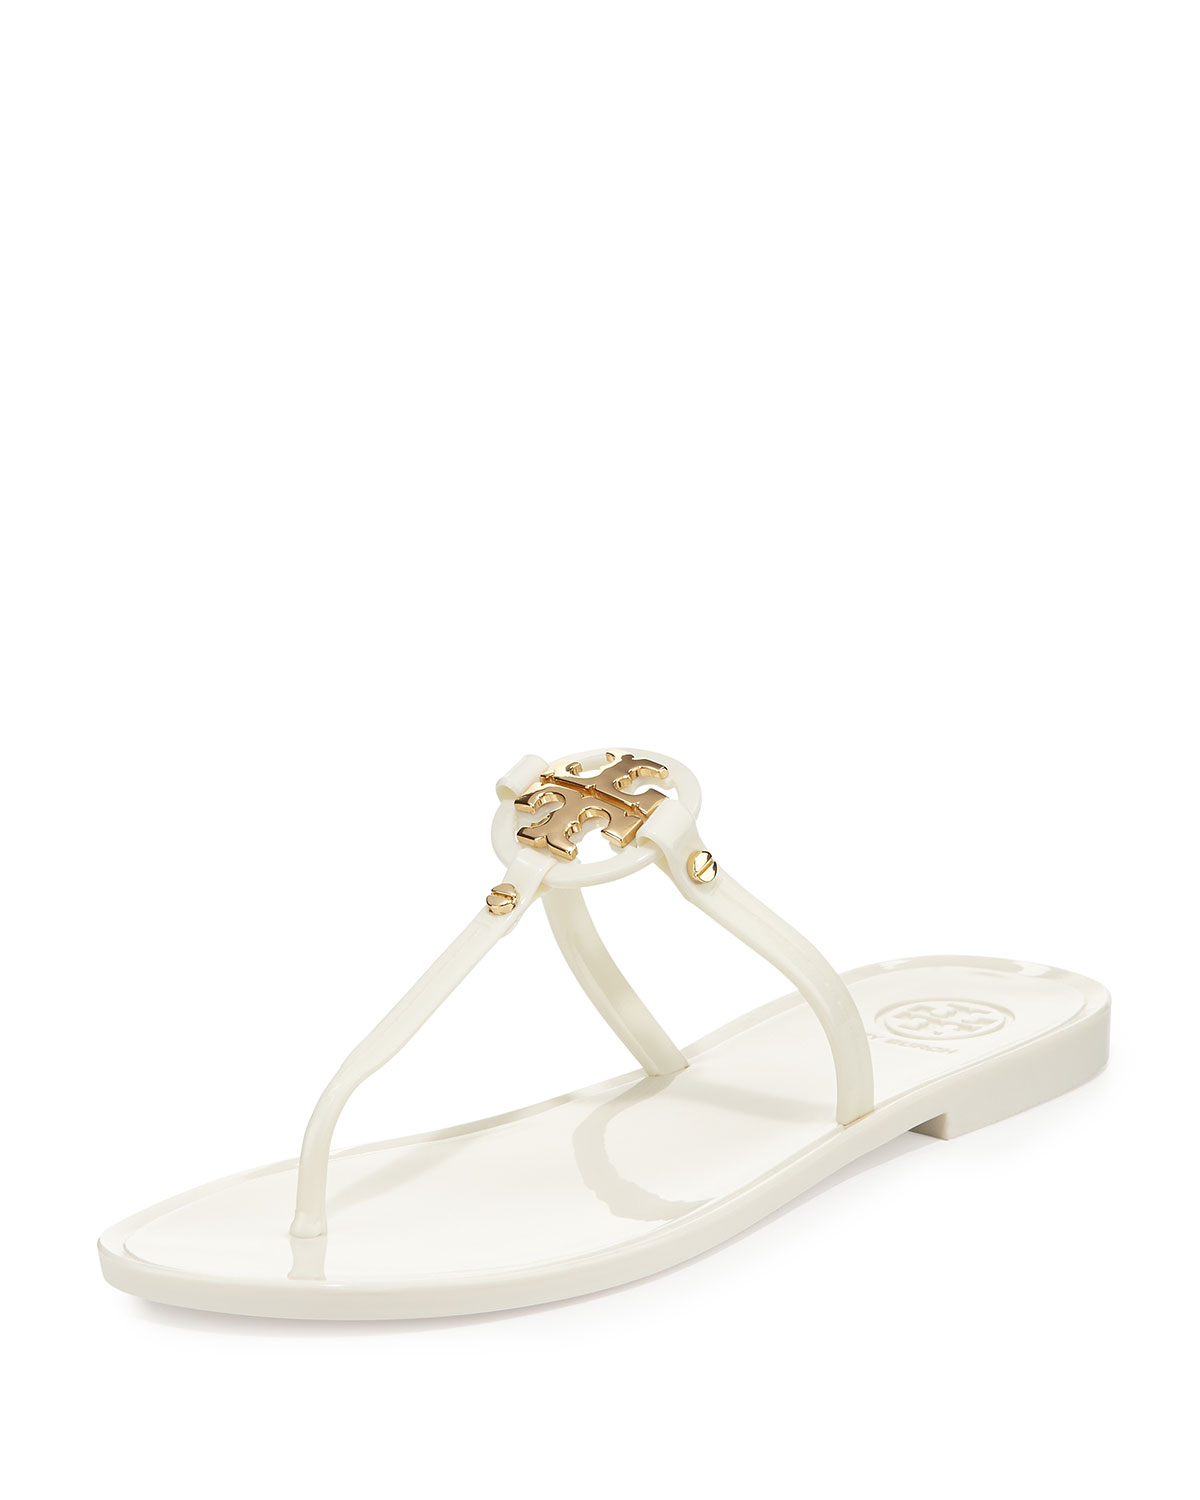 31a6a215f3ac Tory Burch Mini Miller Jelly Thong Sandal